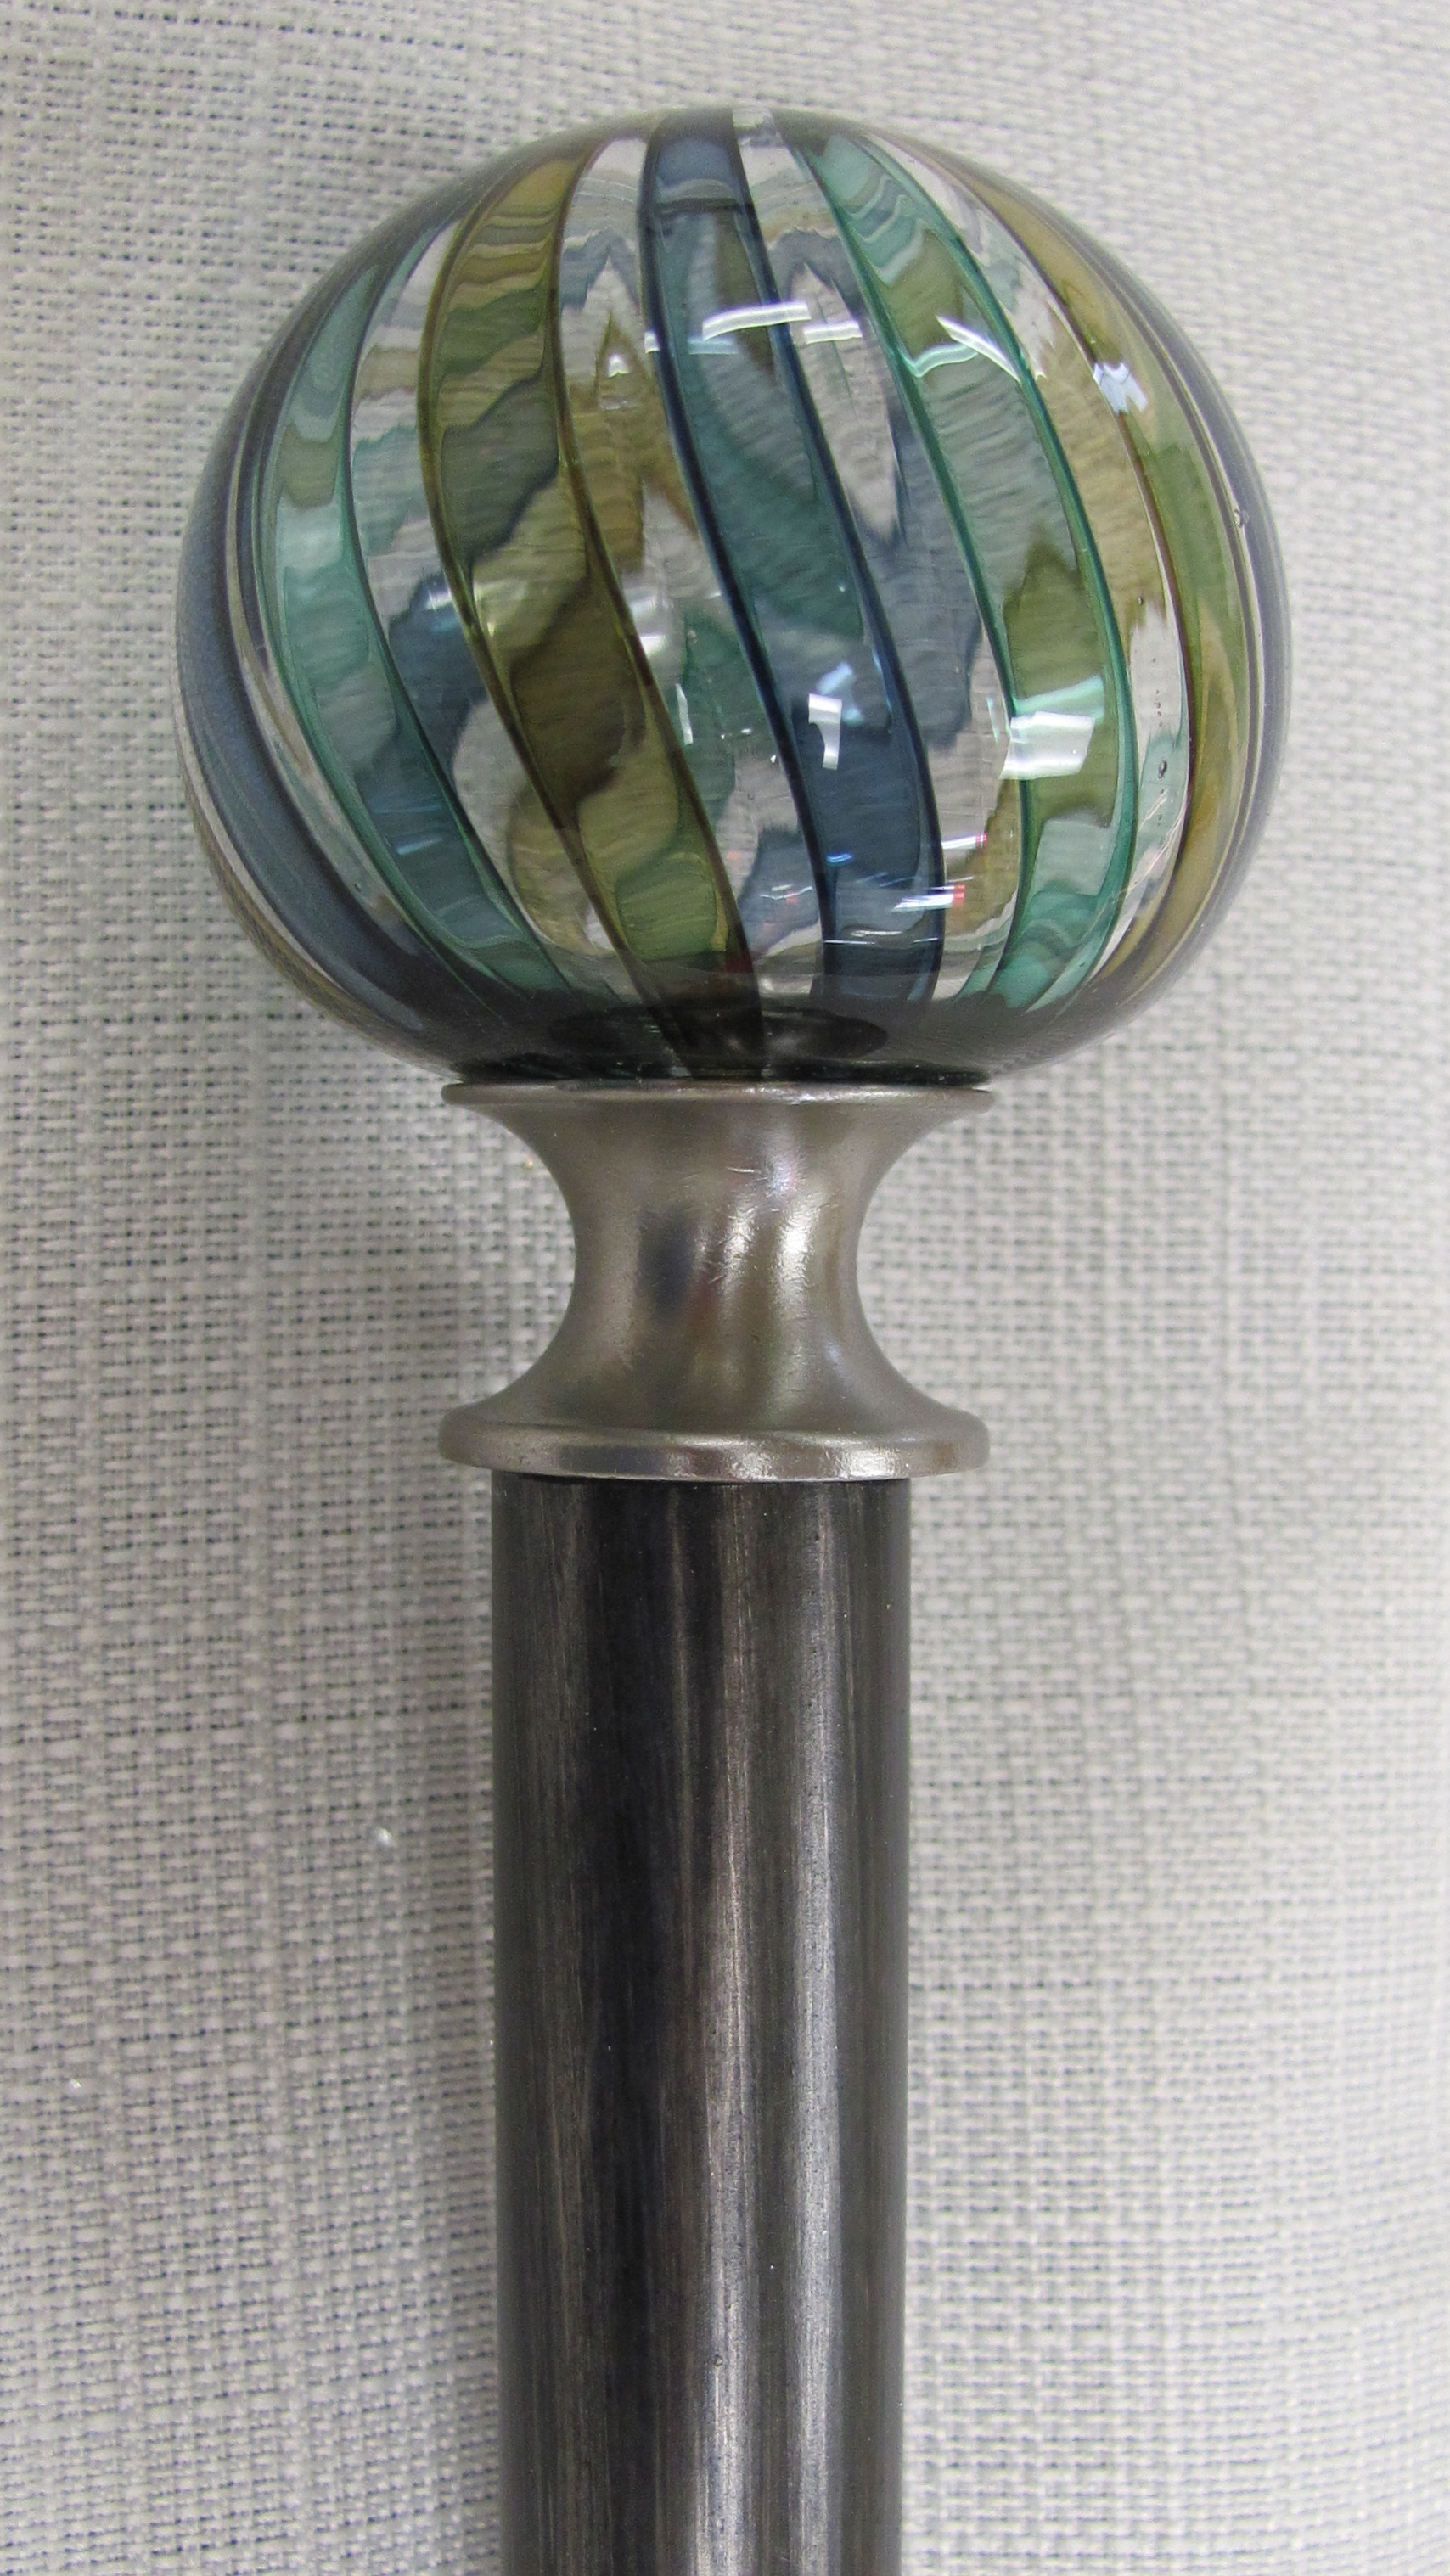 3/4 Inch Iron with Black Glazed Finish and Tracy Finial, Tide Pool